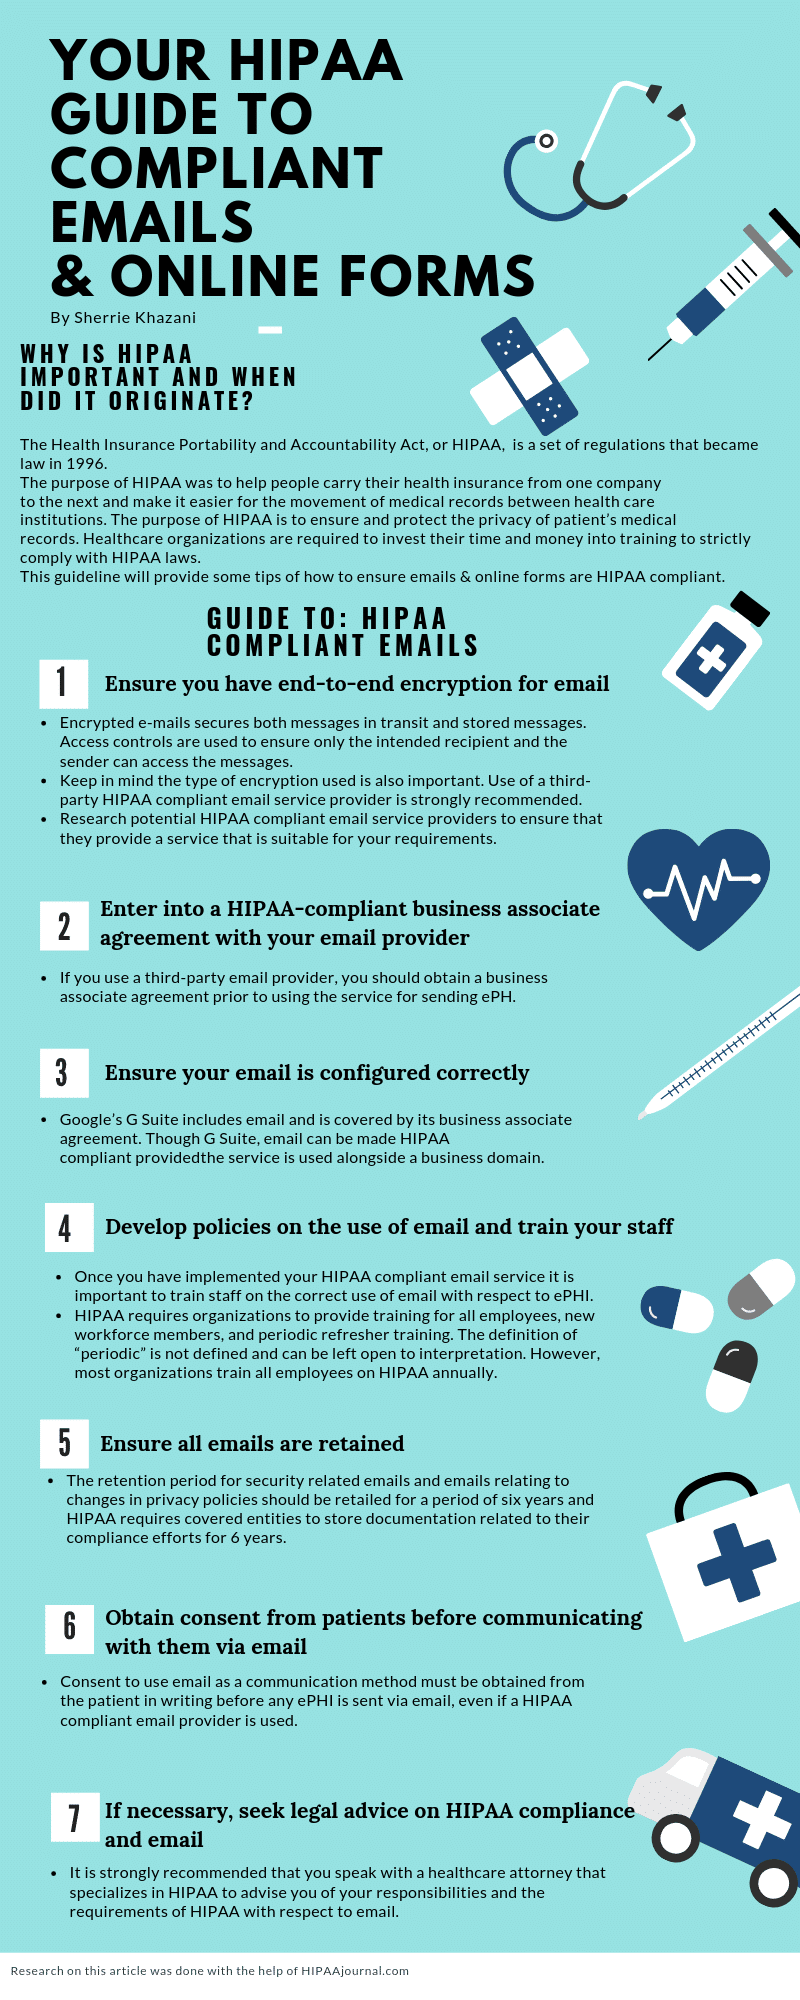 Hipaa Compliant Email Details